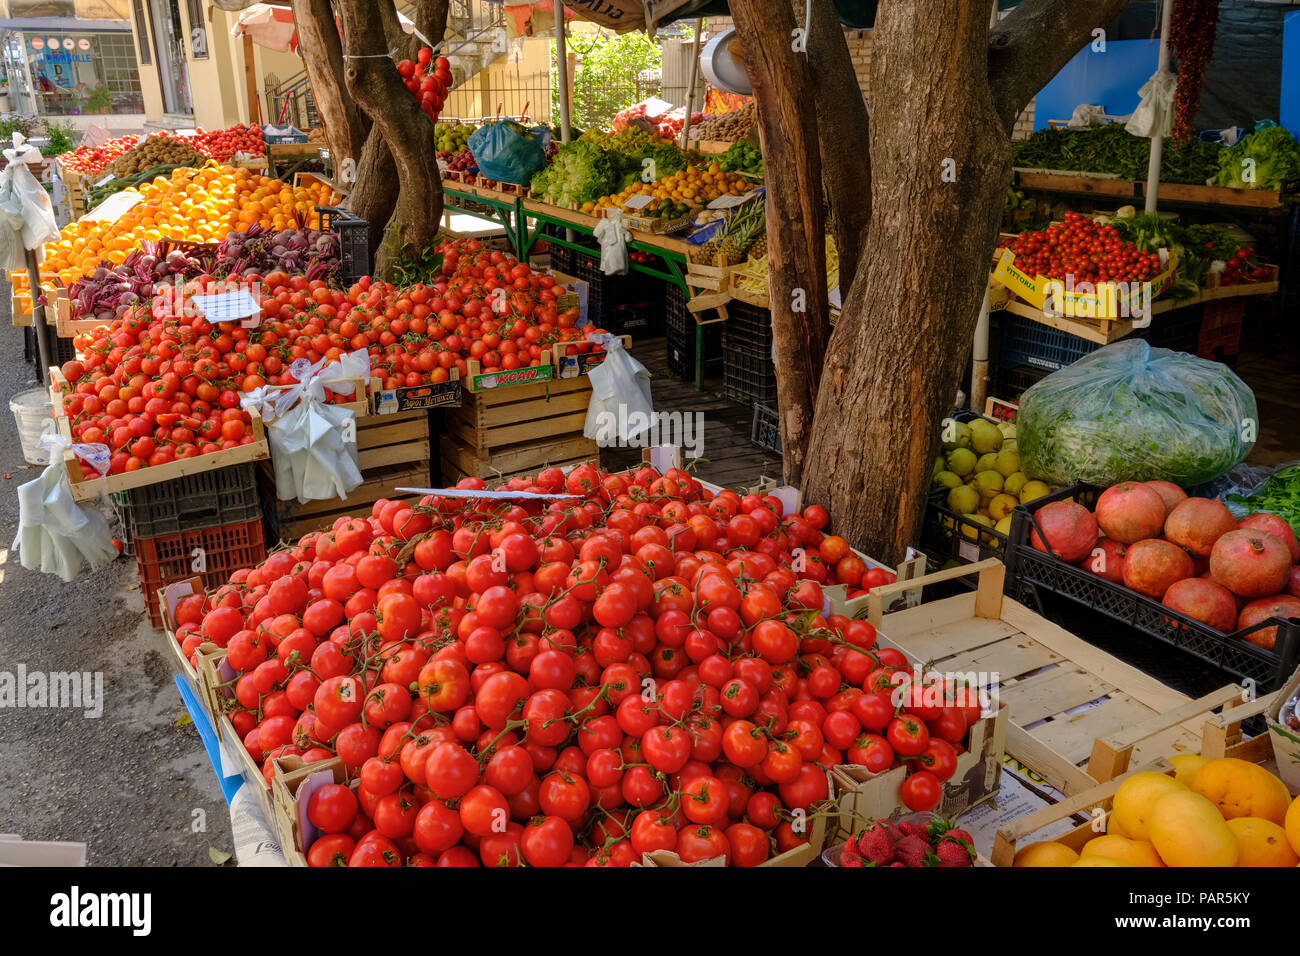 Albania, Tirana, stall with tomatoes, vegetables and fruits - Stock Image